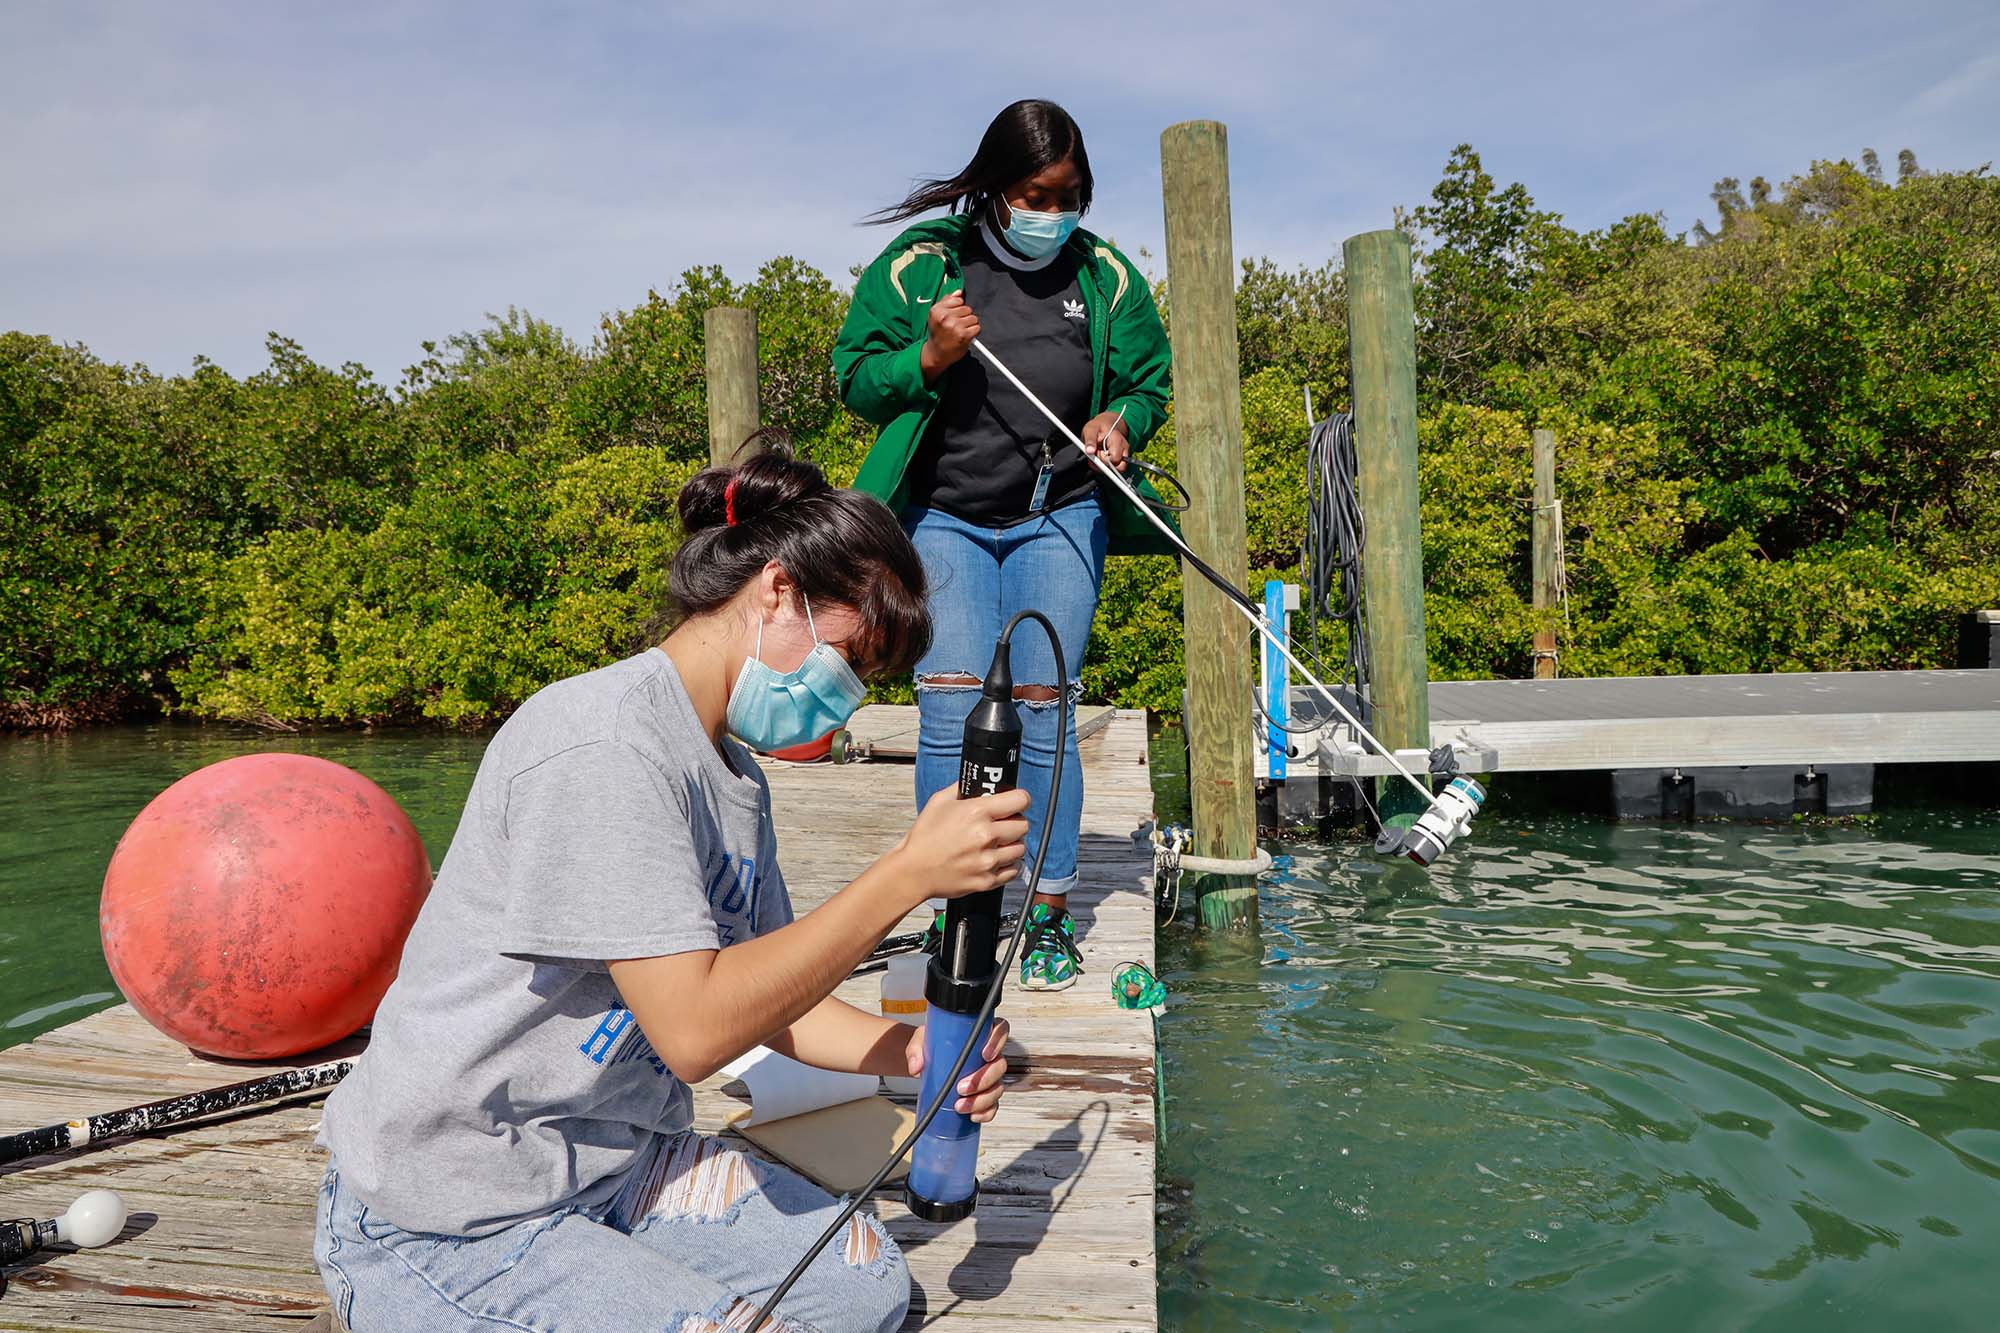 Mote staff, with help from an intern, collect water samples at Mote's dock and process them in Dr. Vincent Lovko's lab. Pictured (from left): MarSci-LACE intern Niky Roblero; Giandria Green, former MarSci-LACE intern and now Mote staff. Photo Credit - © Mote Marine Laboratory